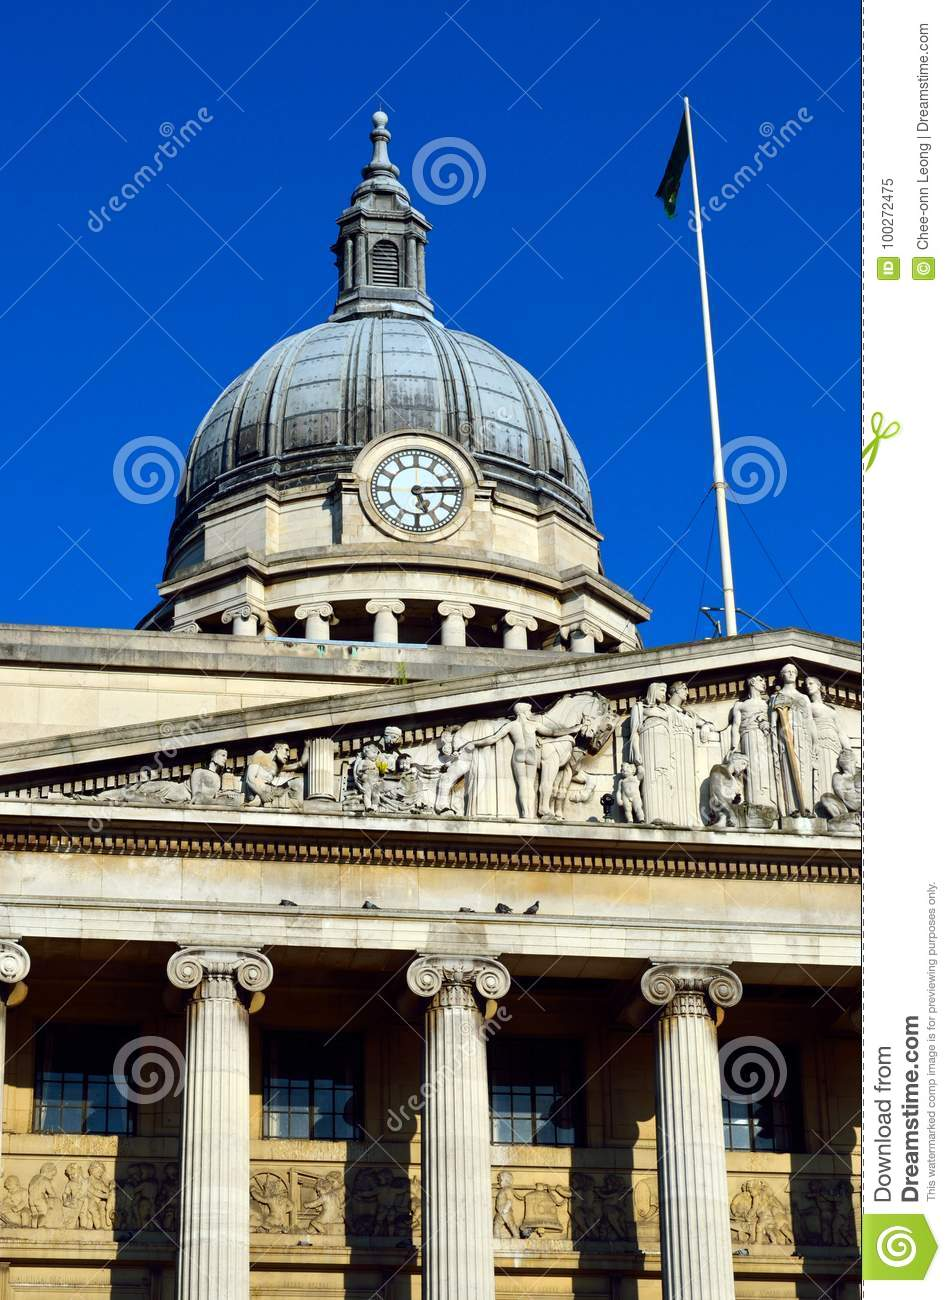 Stock image of Old architecture in Nottingham, England